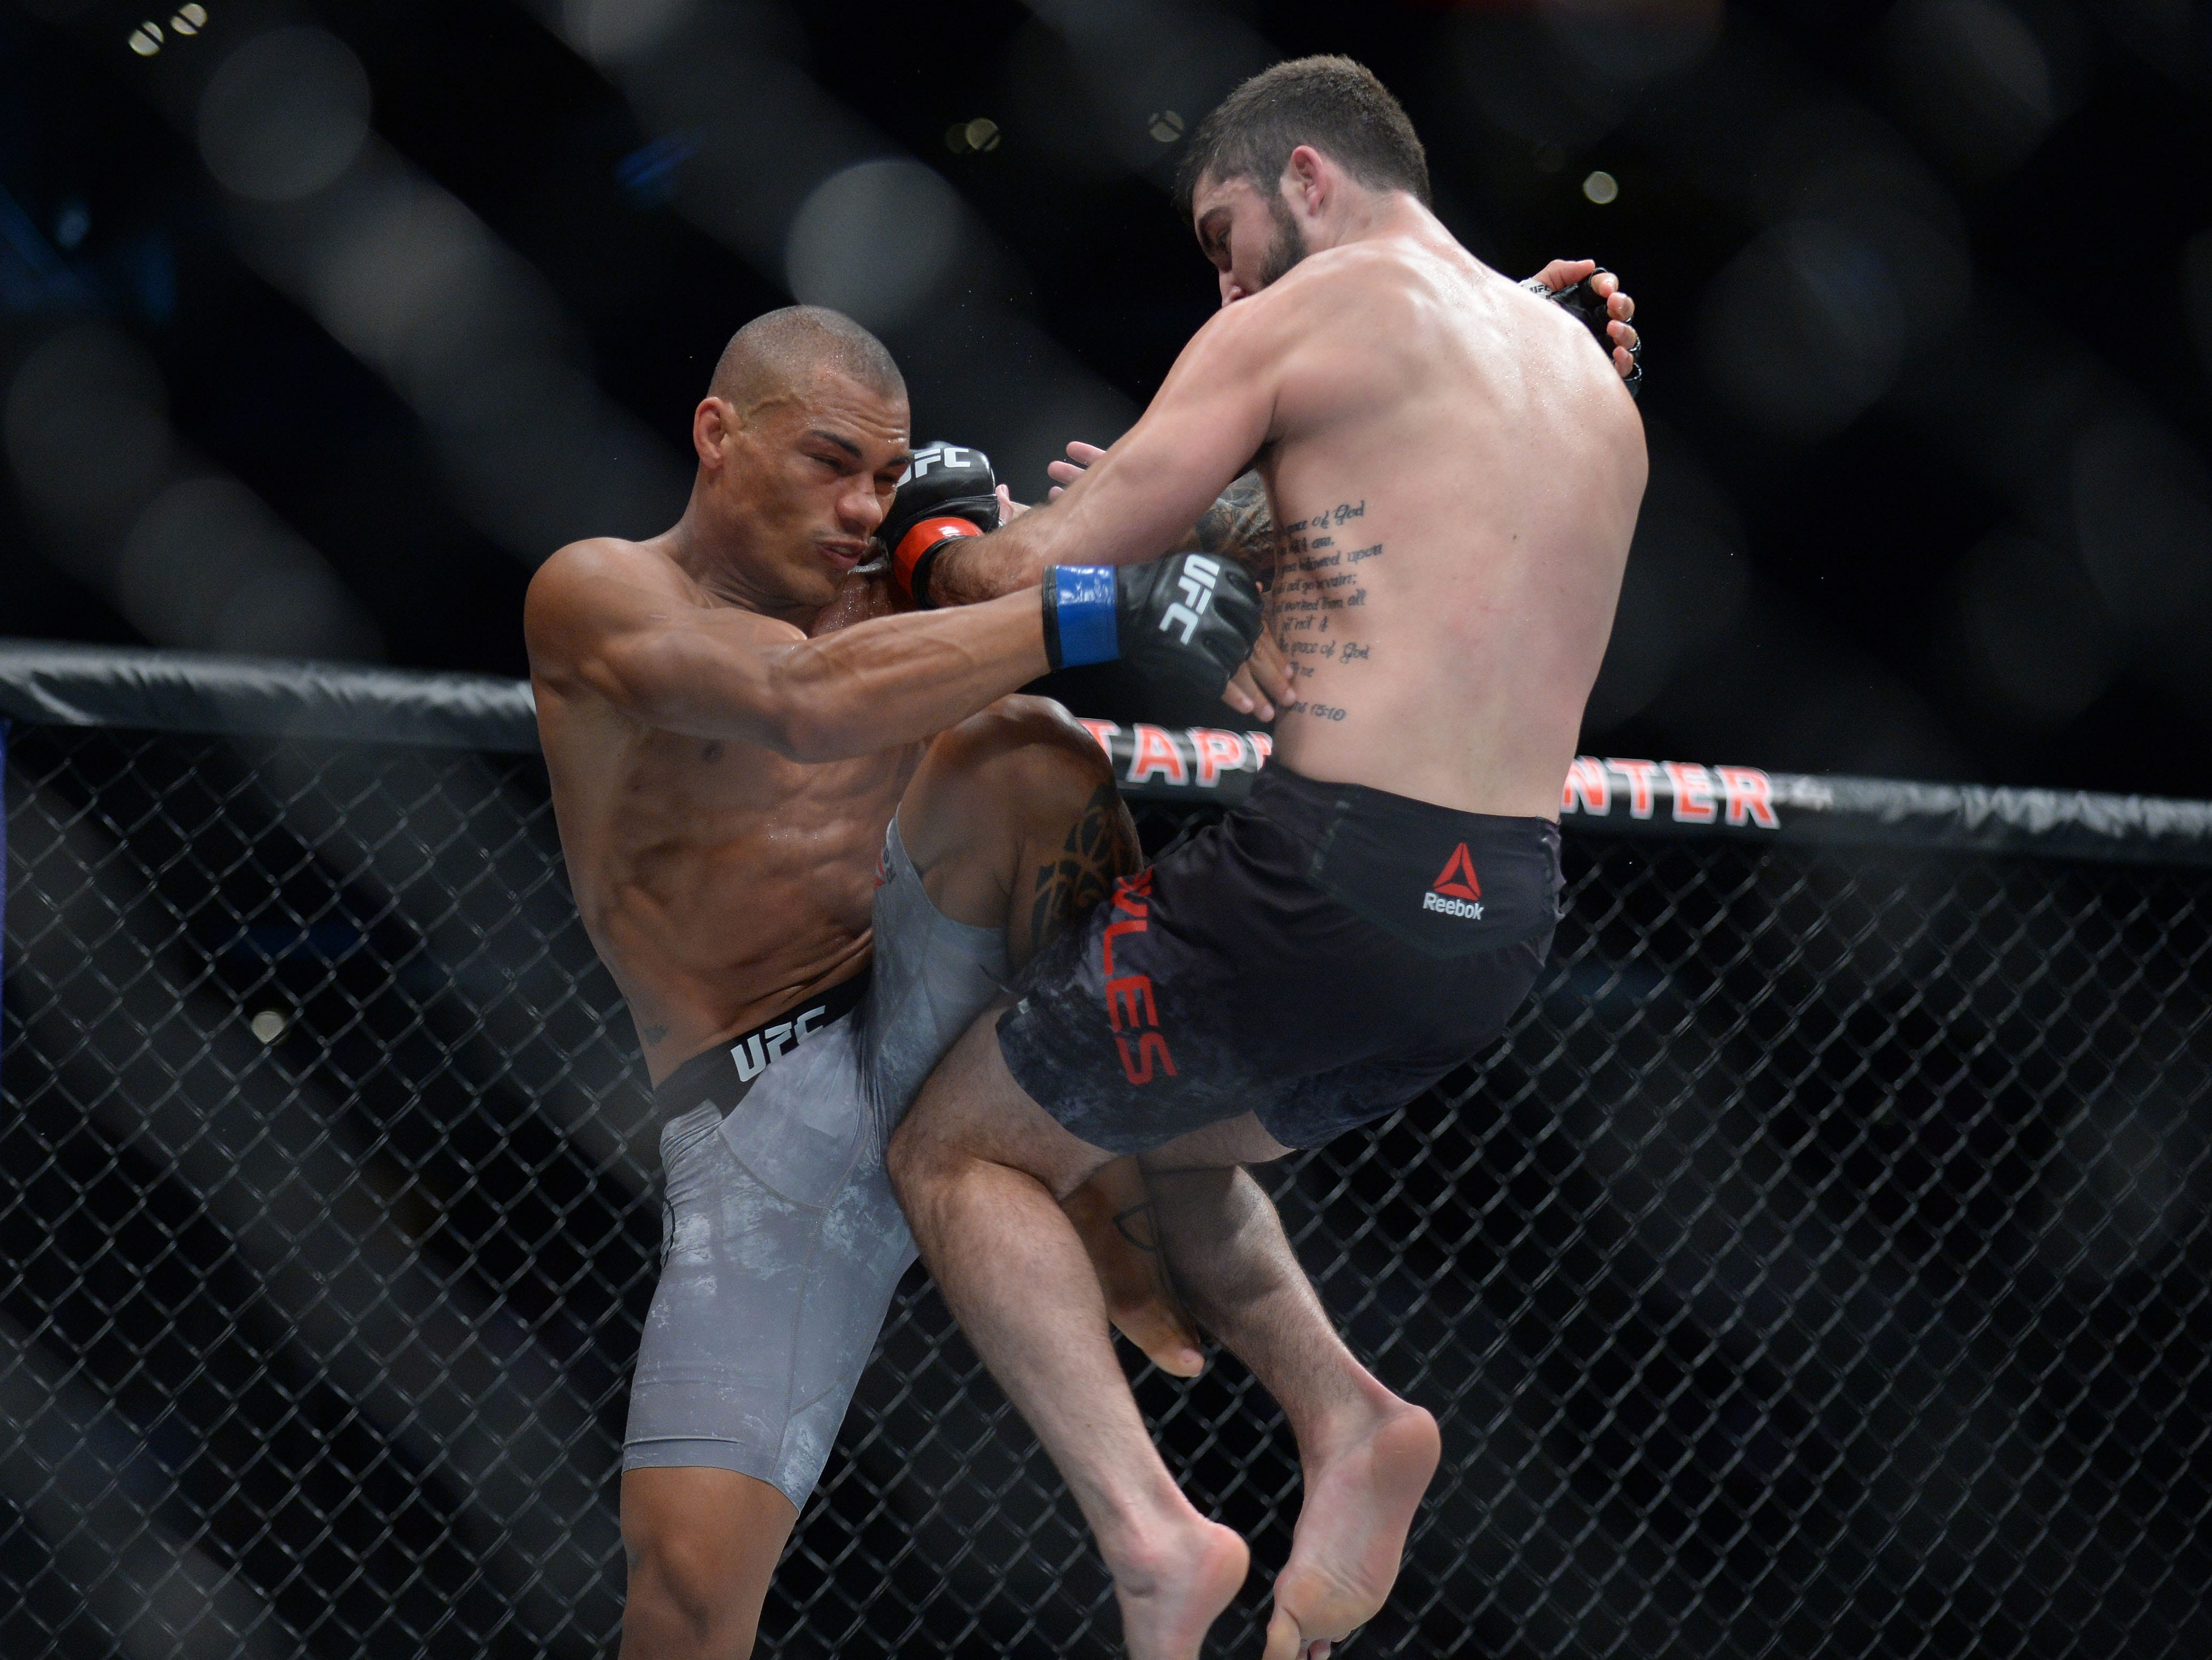 Matt Sayles moves in with a hit against Sheymon Moreas during UFC 227 at Staples Center.